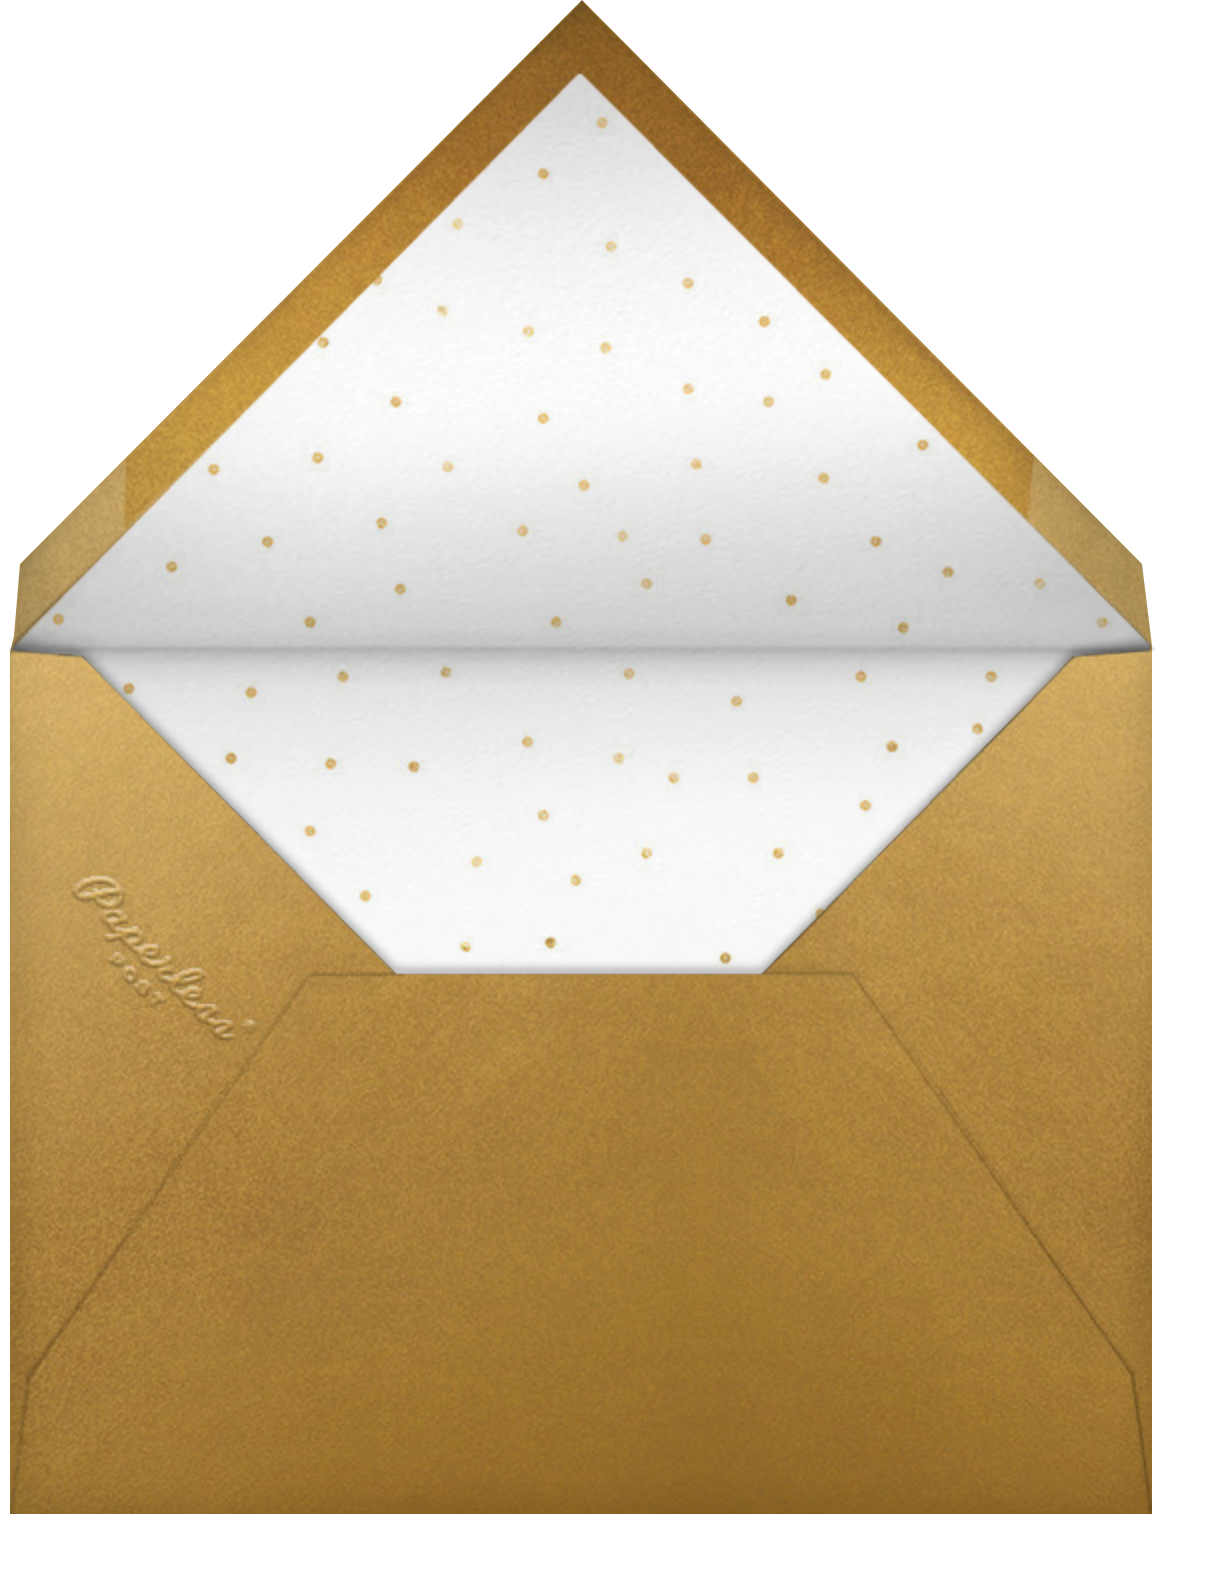 Huge News Photo - Paperless Post - Engagement party - envelope back